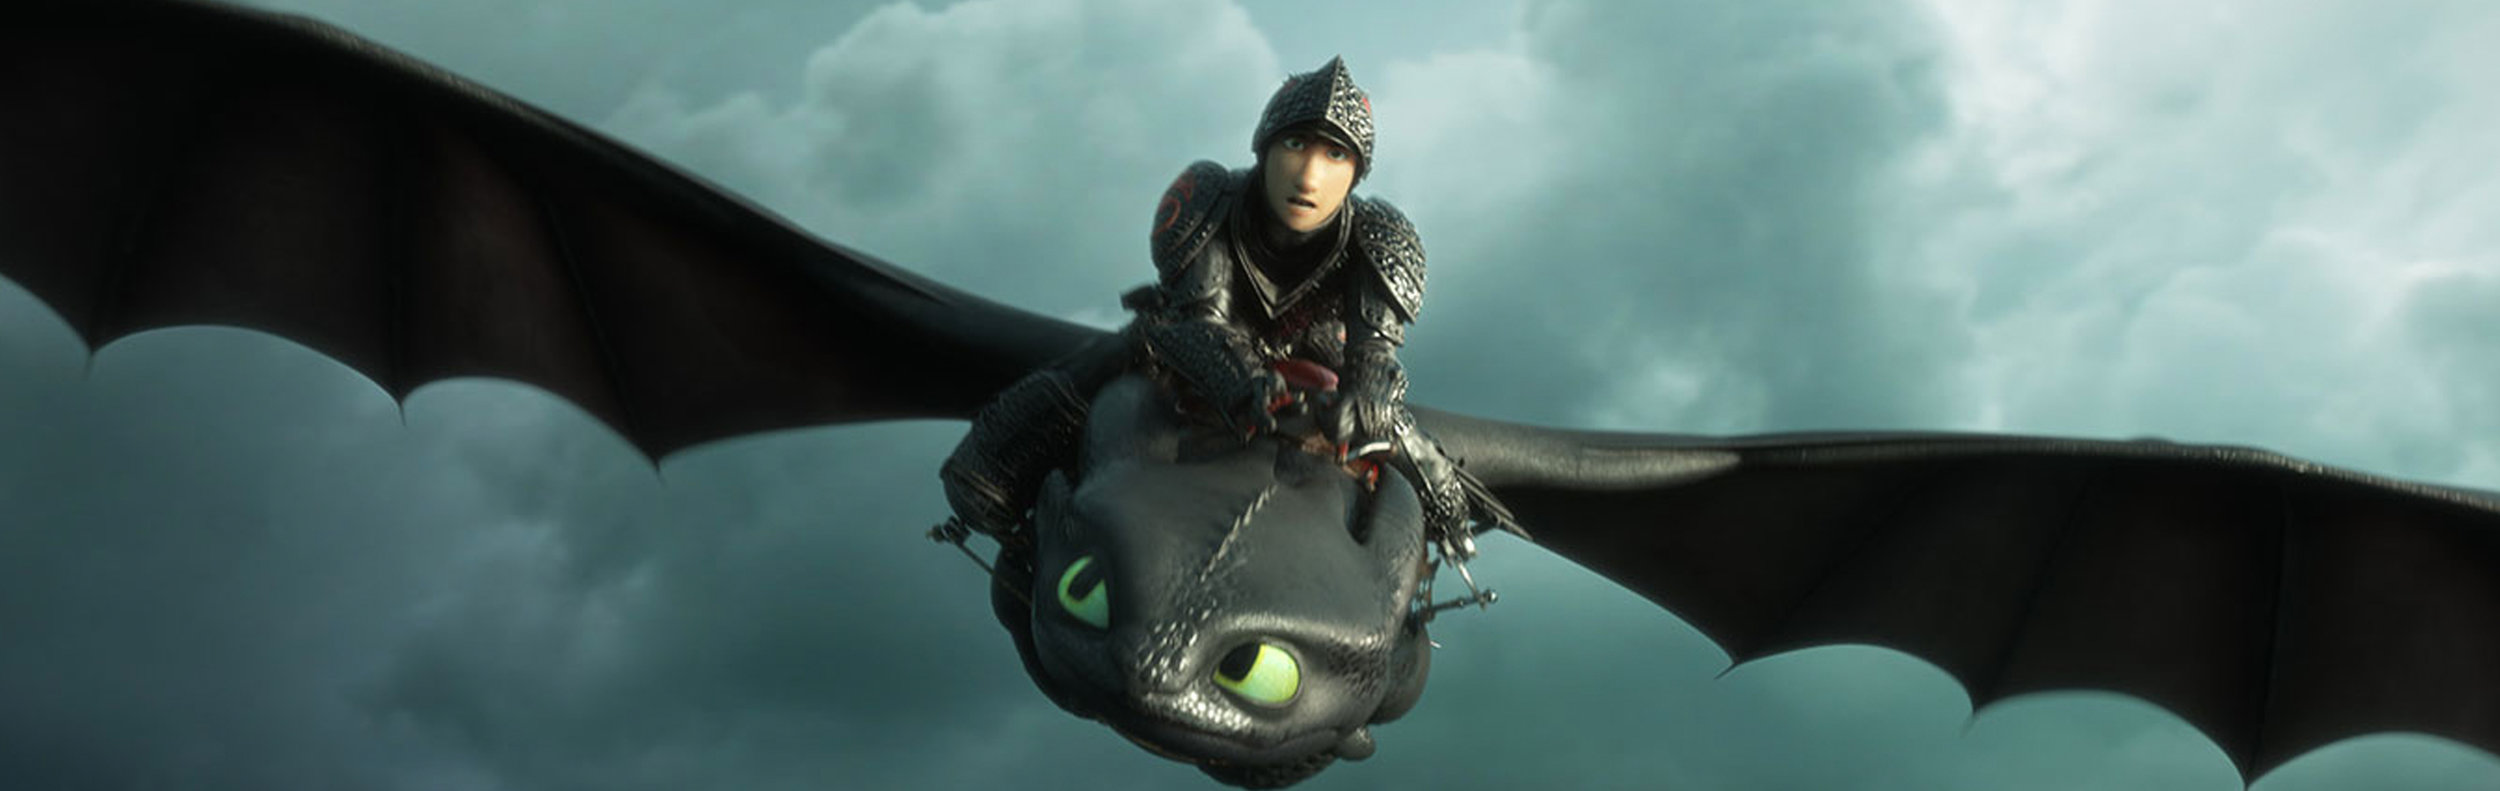 HOW TO TRAIN YOUR DRAGON:THE HIDDEN WORD - 2019 - Cert PG - 1hr44mins